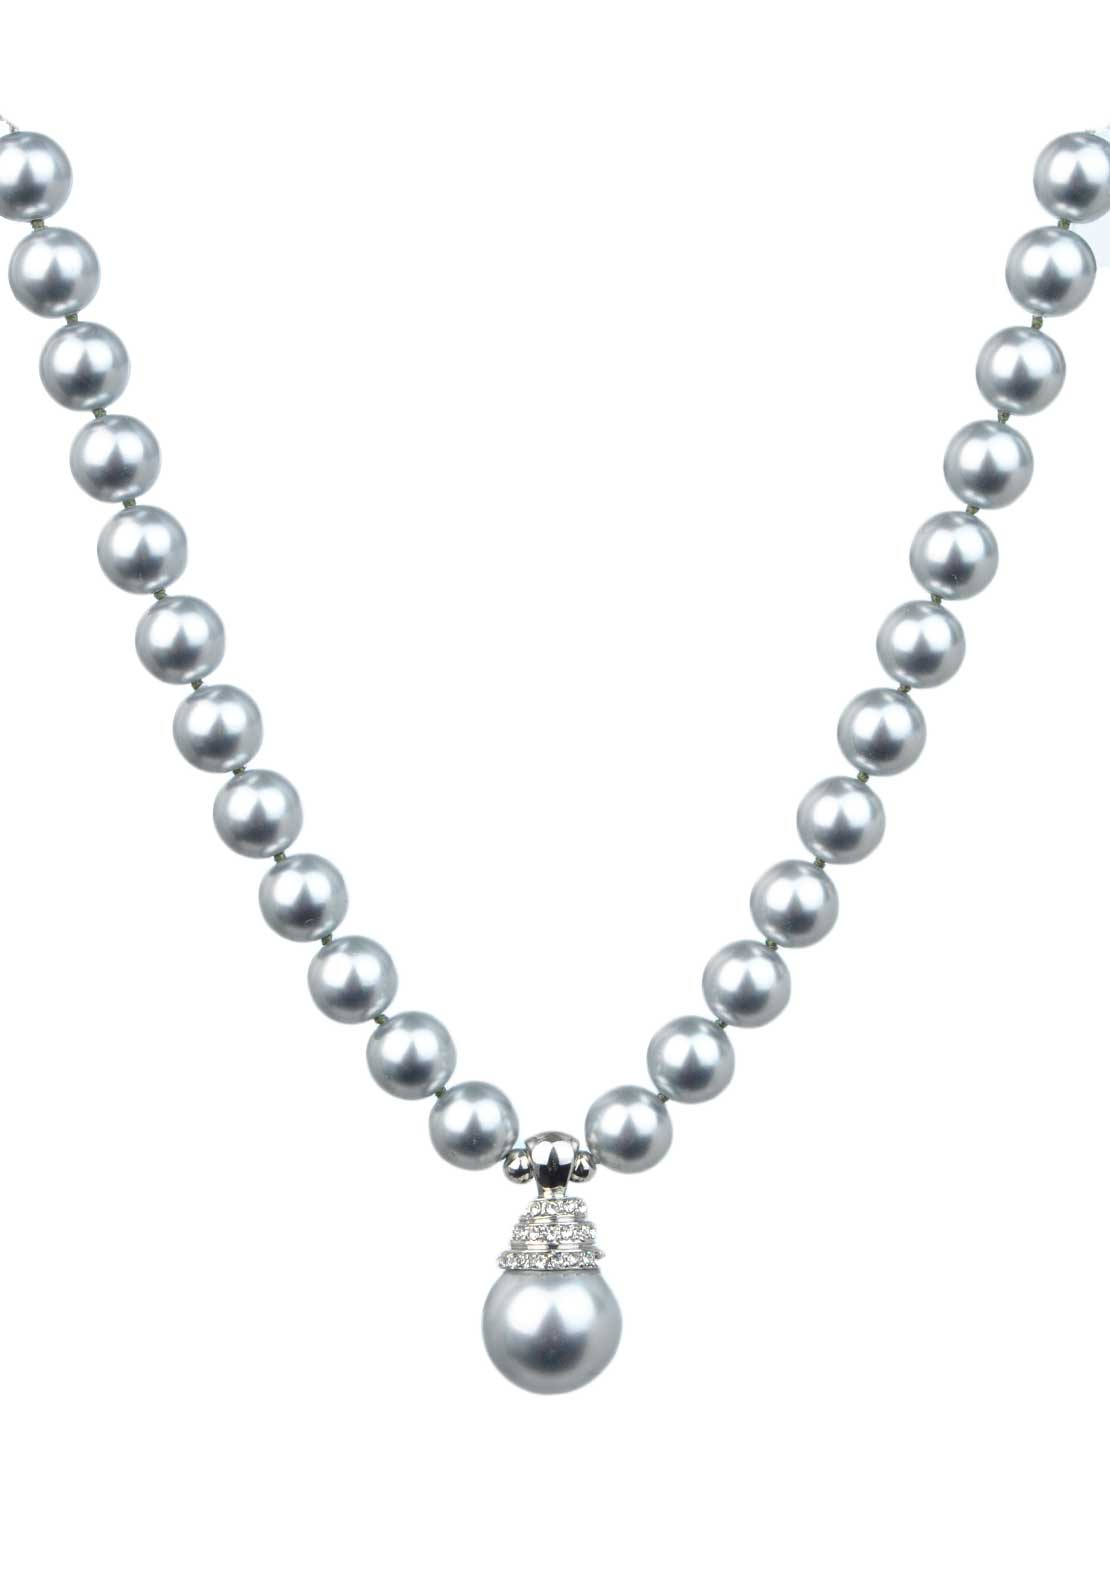 Absolute Jewellery Pearl Necklace with Crystal Set Pearl Drop, Grey